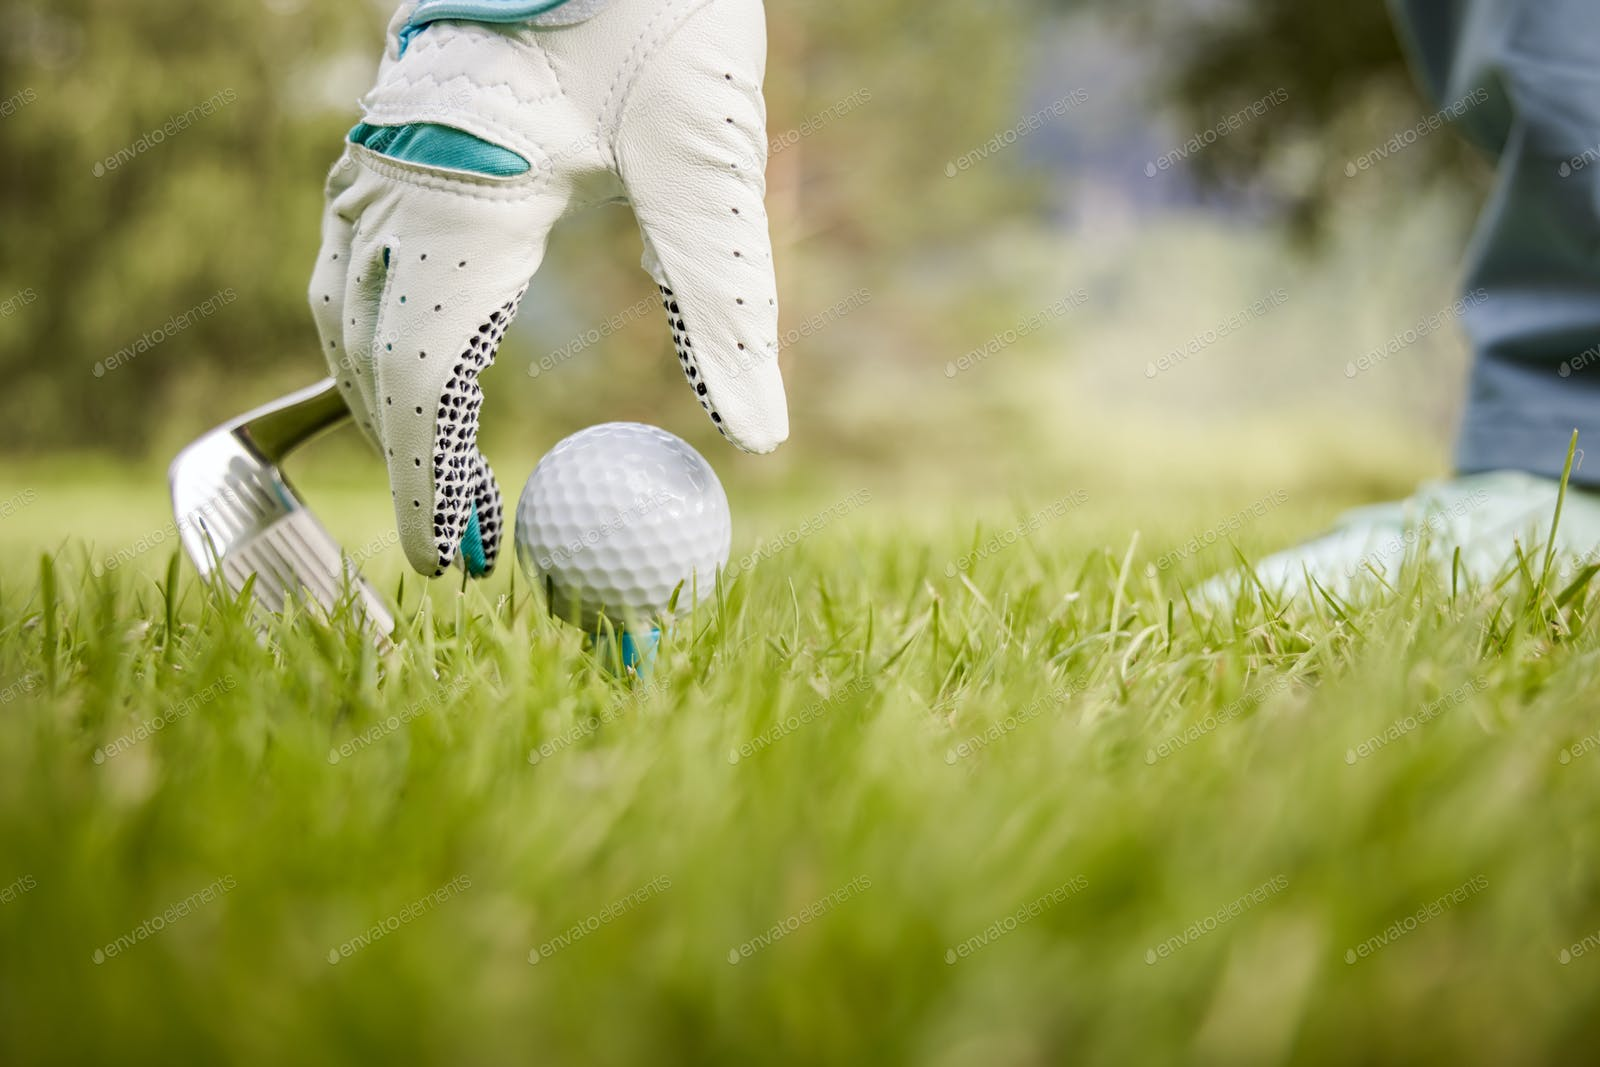 Hand In Glove Placing Golf Ball On Tee Photo By Cookelma On Envato Elements